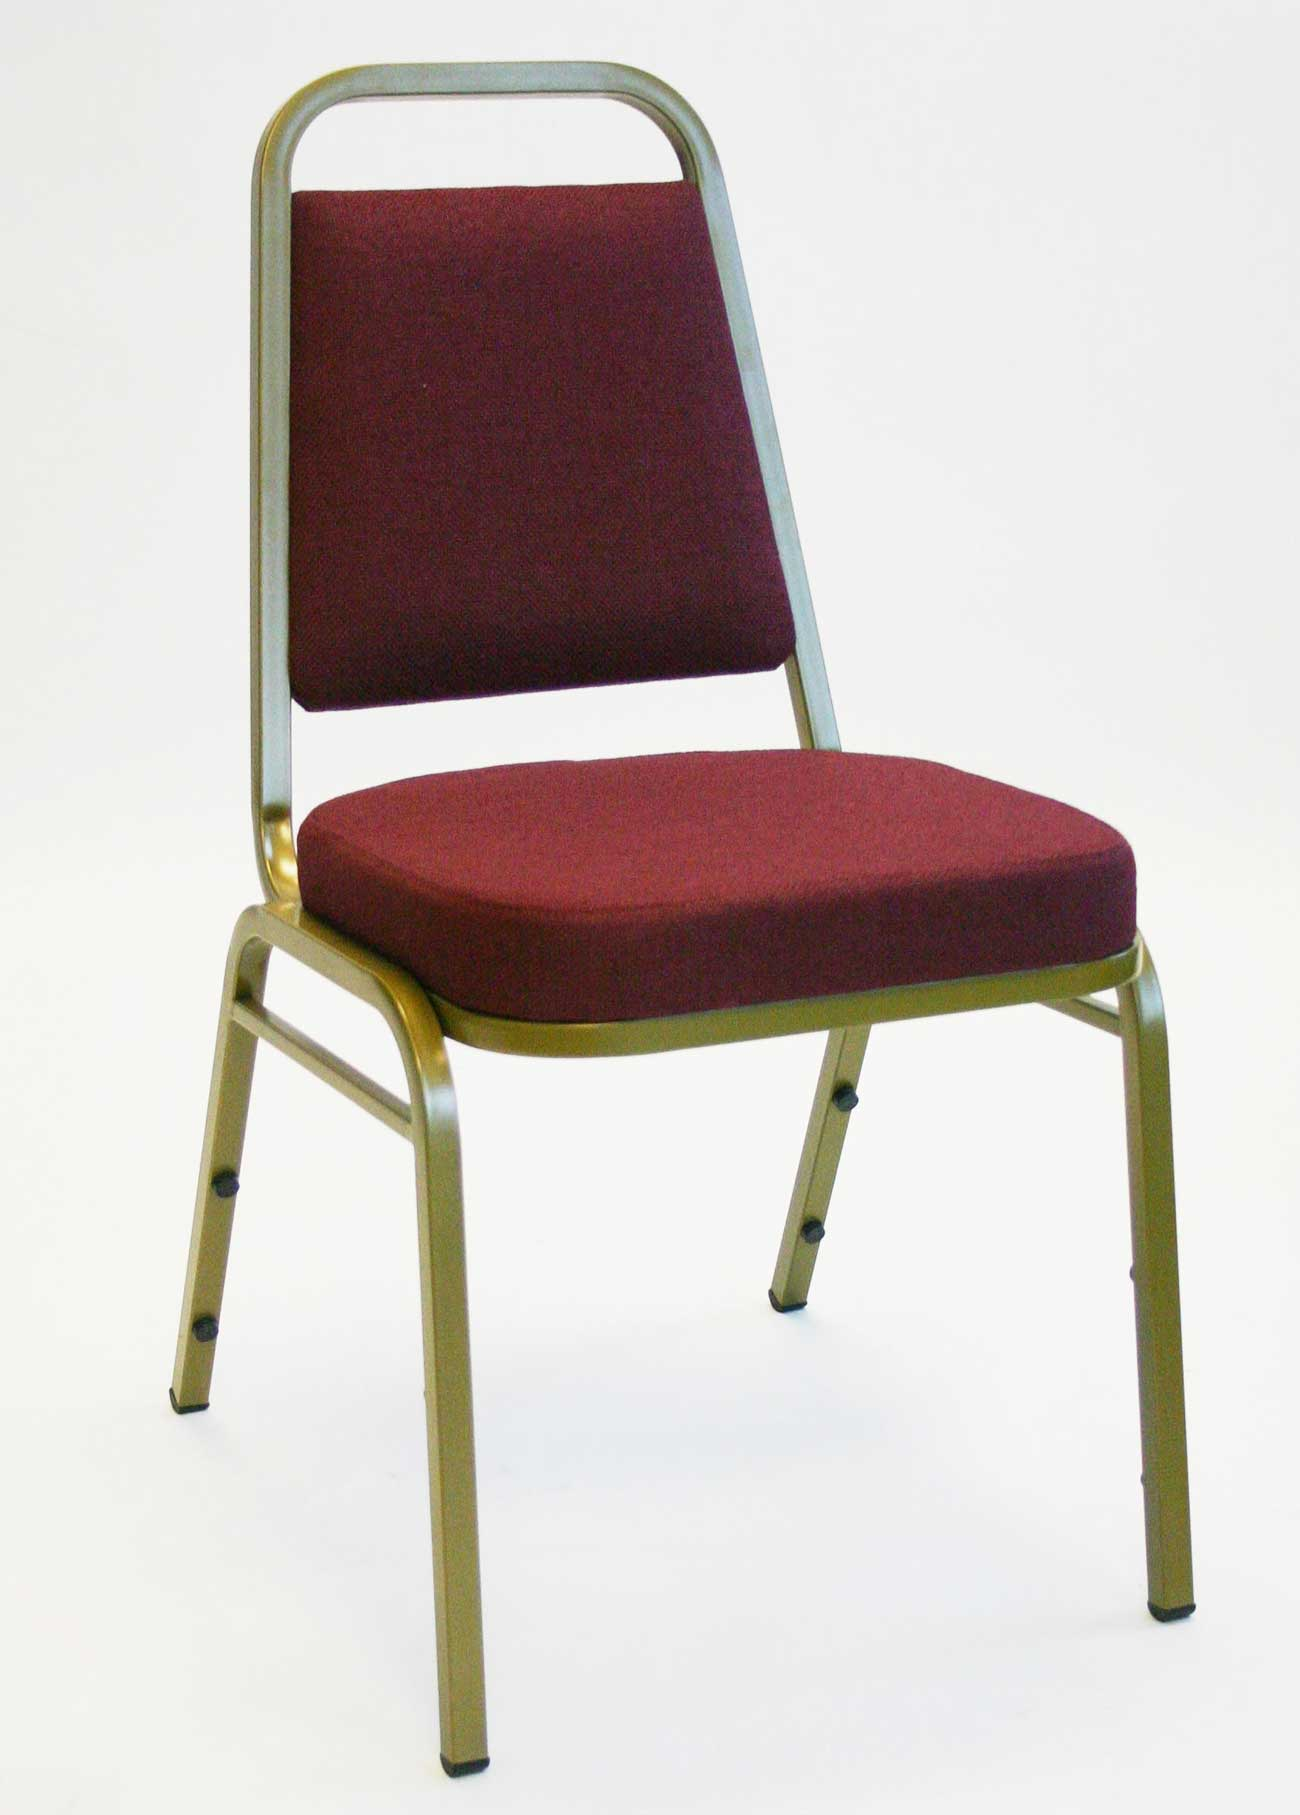 Discount Red Folding Plastic Seat